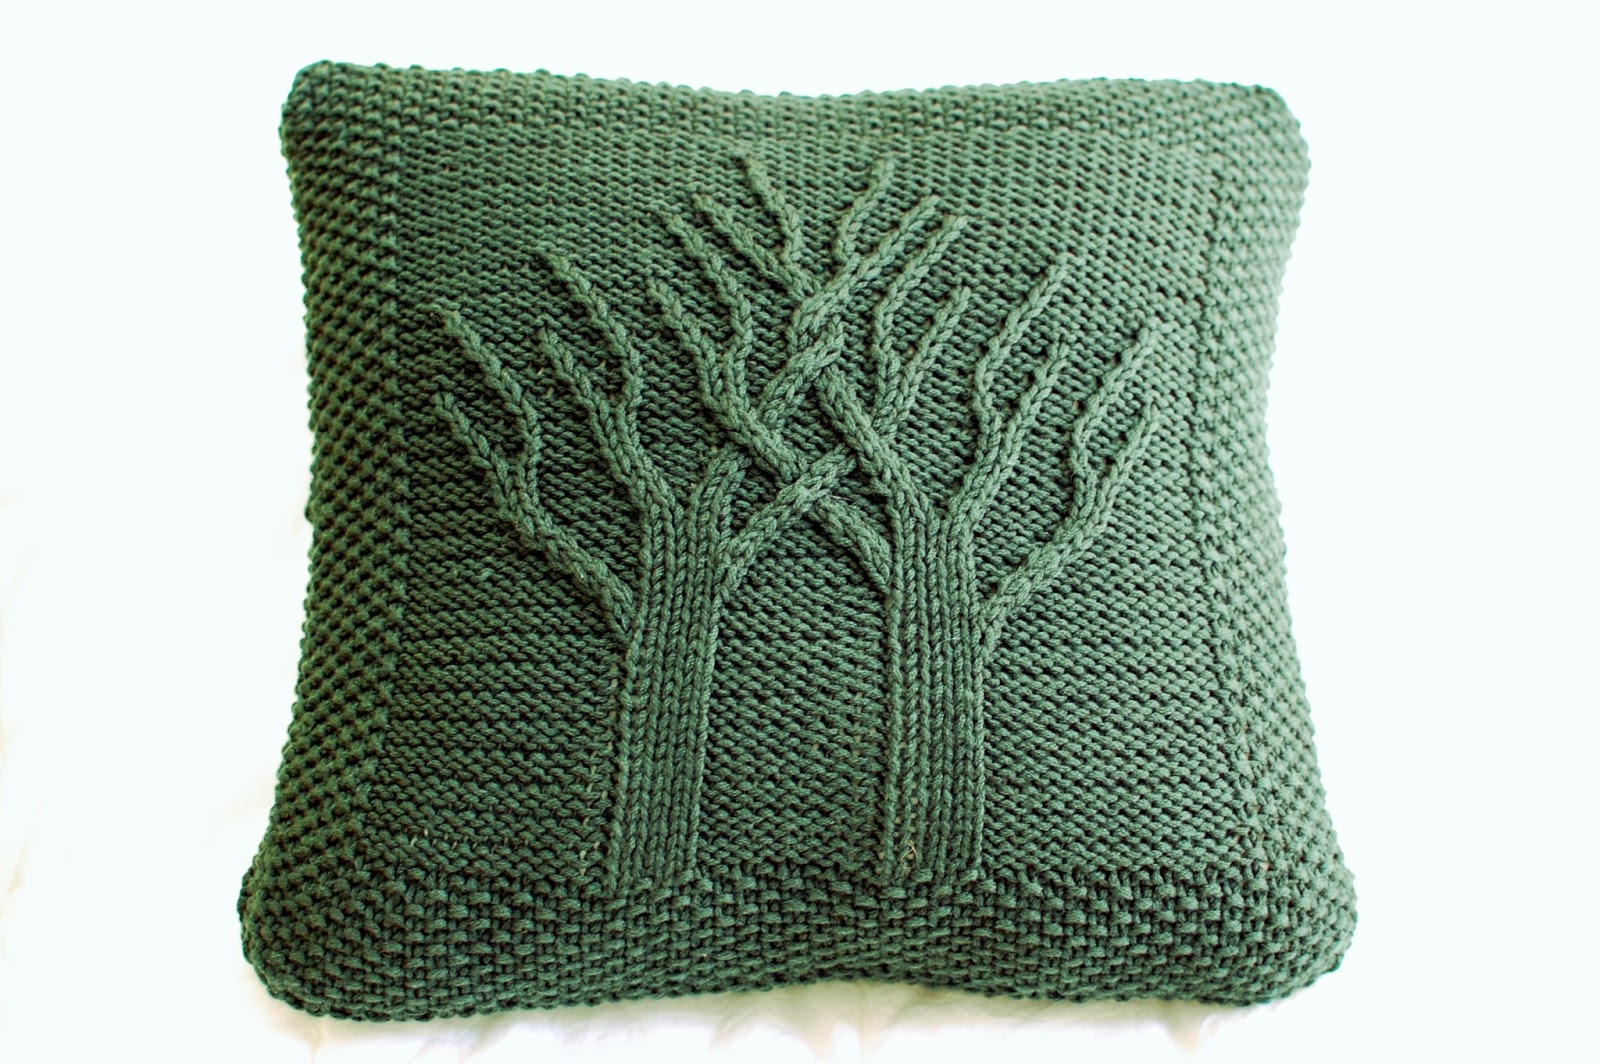 Tree Of Life Knitting Pattern Afghan : 26 Donuts: June 2013